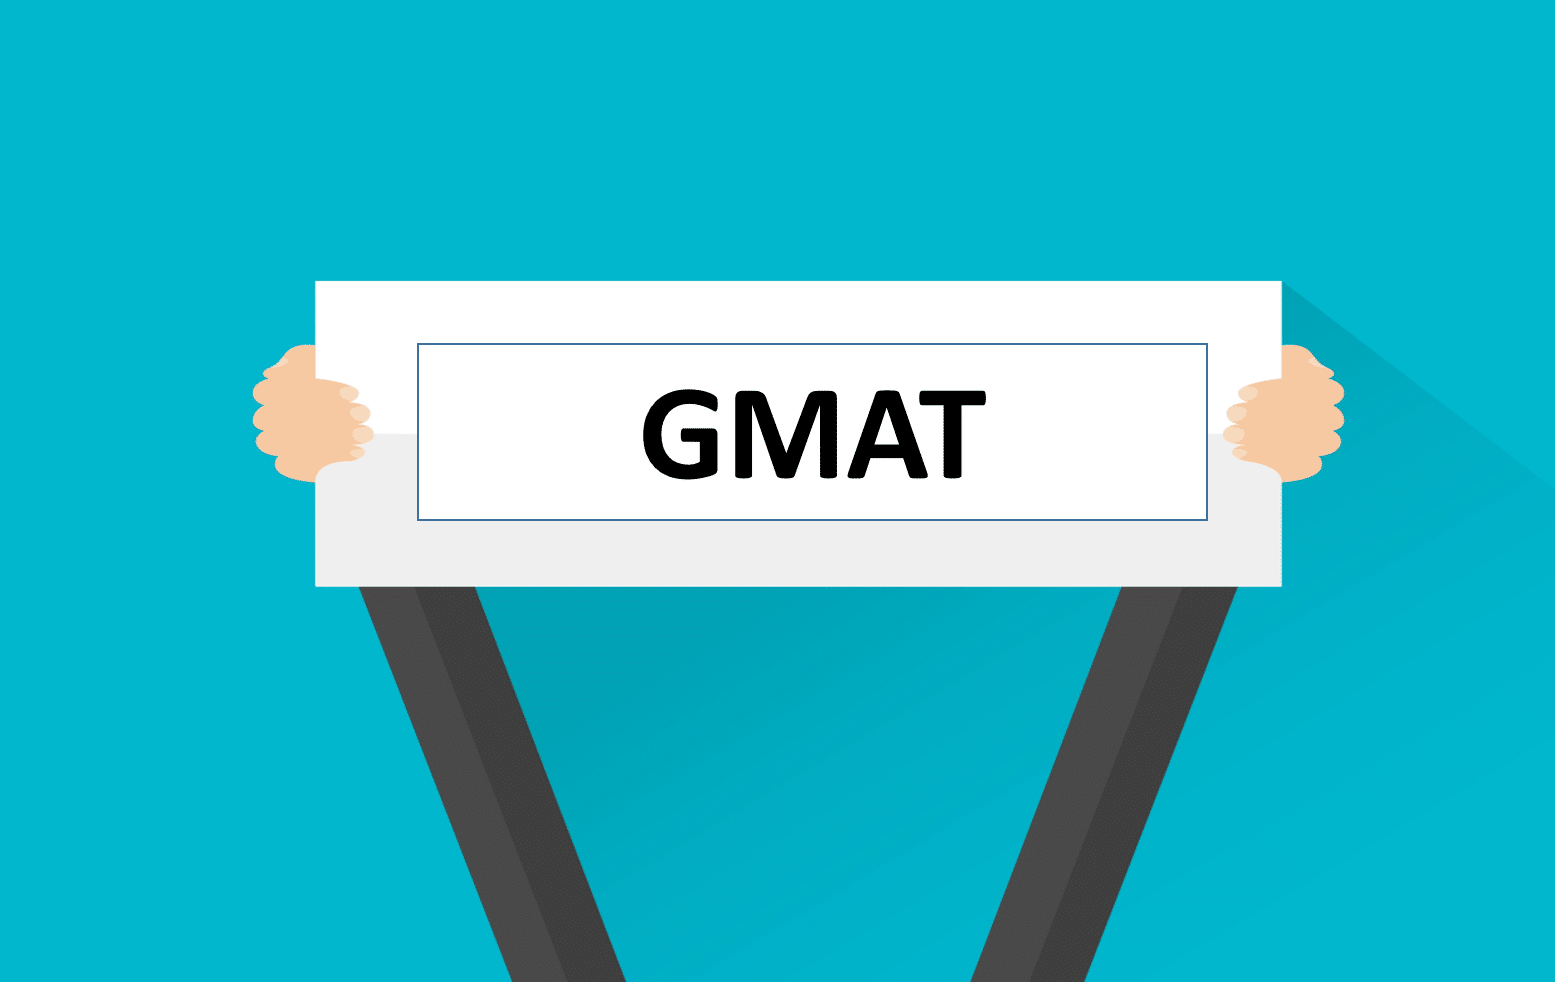 what is the use of gmat exam